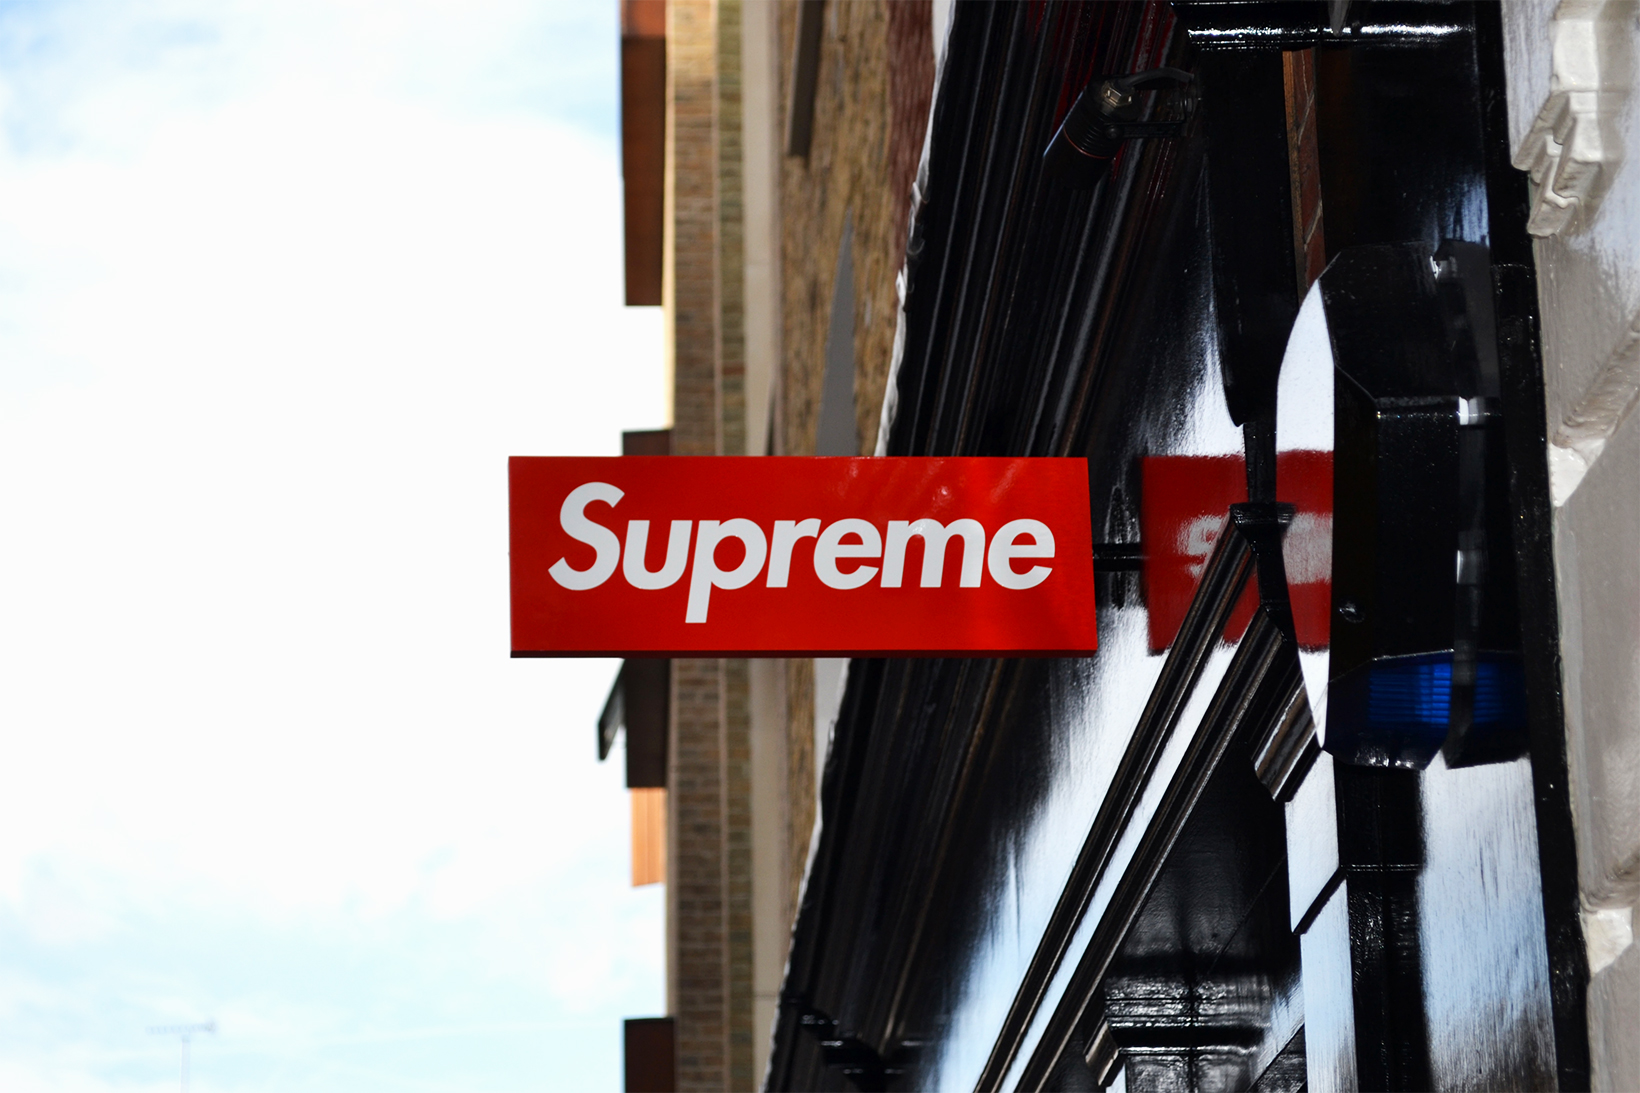 Crystale Clothing additionally Porky Pig Hypebeast Sticker  Not Supreme further Supreme X Jordan Hoodie as well Supreme And   The North Face Capsule Collection further Watch. on bape clothing